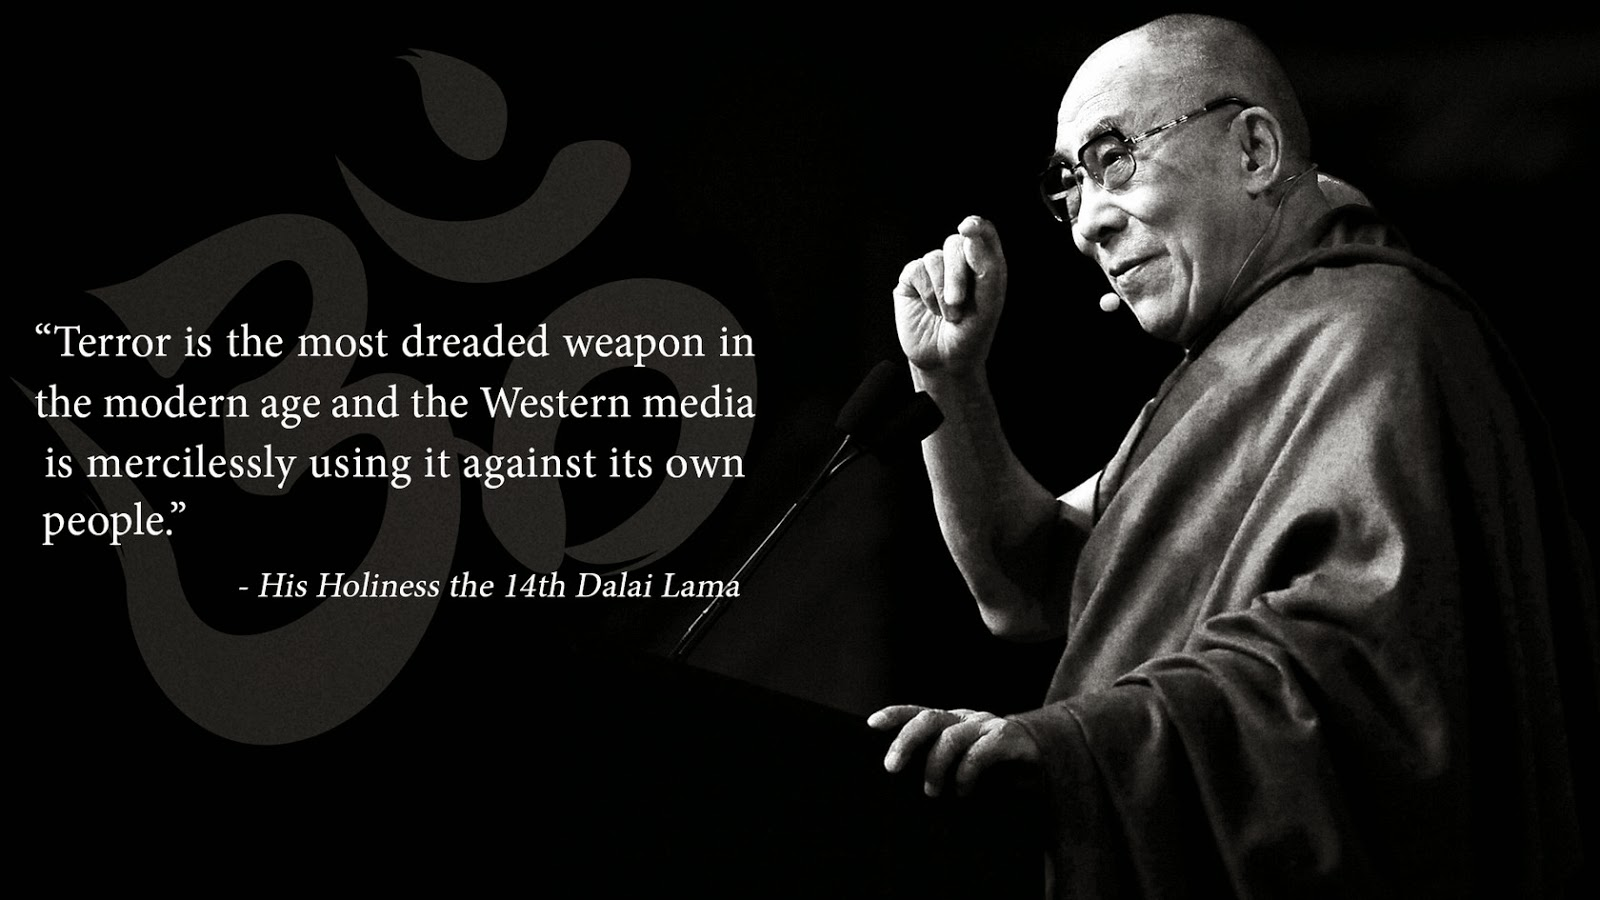 Wise-Motivational-Inspirational-Quotes-Dalai-Lama